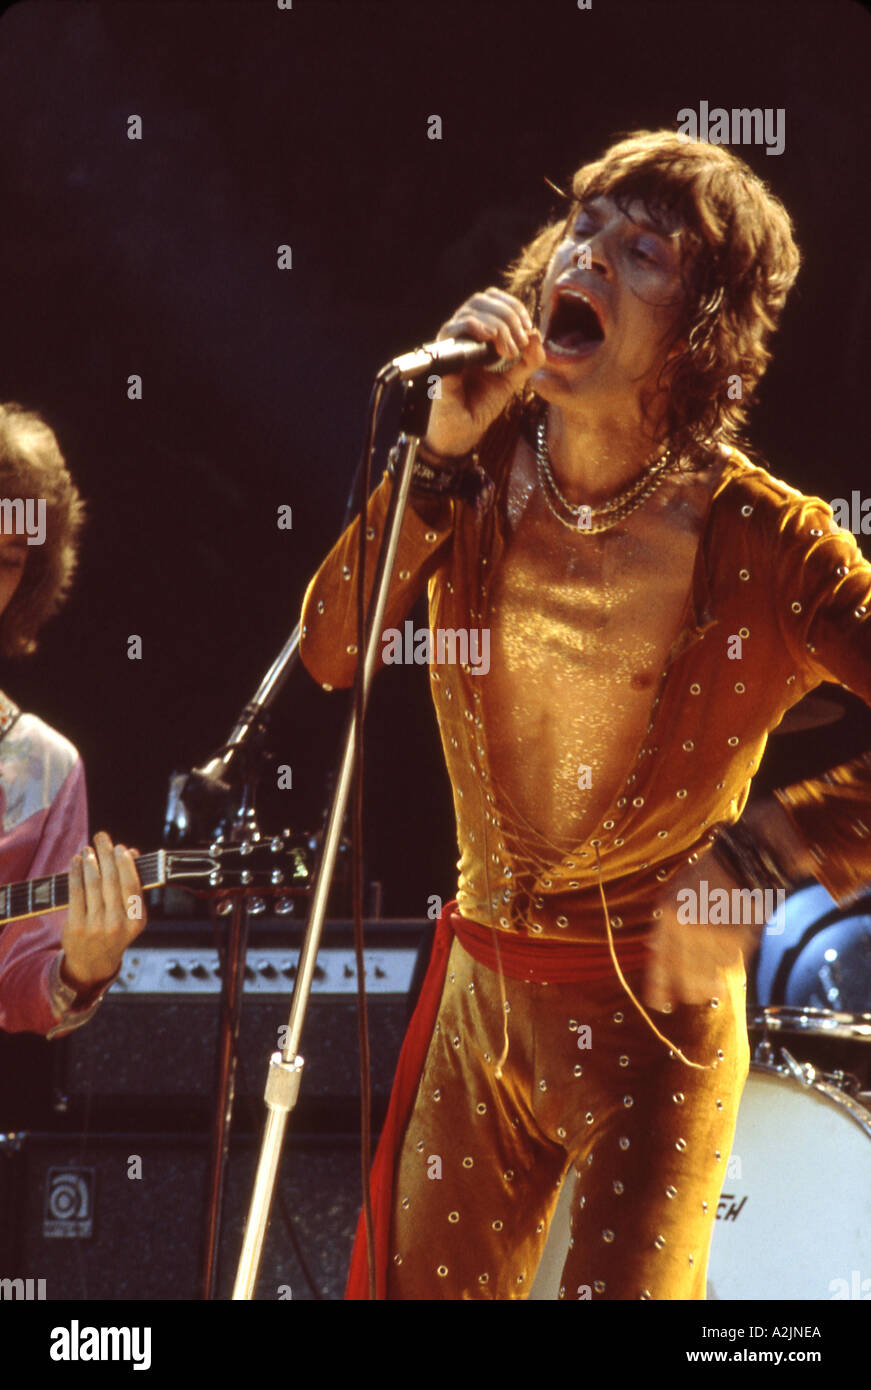 ROLLING STONES Mick Jagger - Stock Image